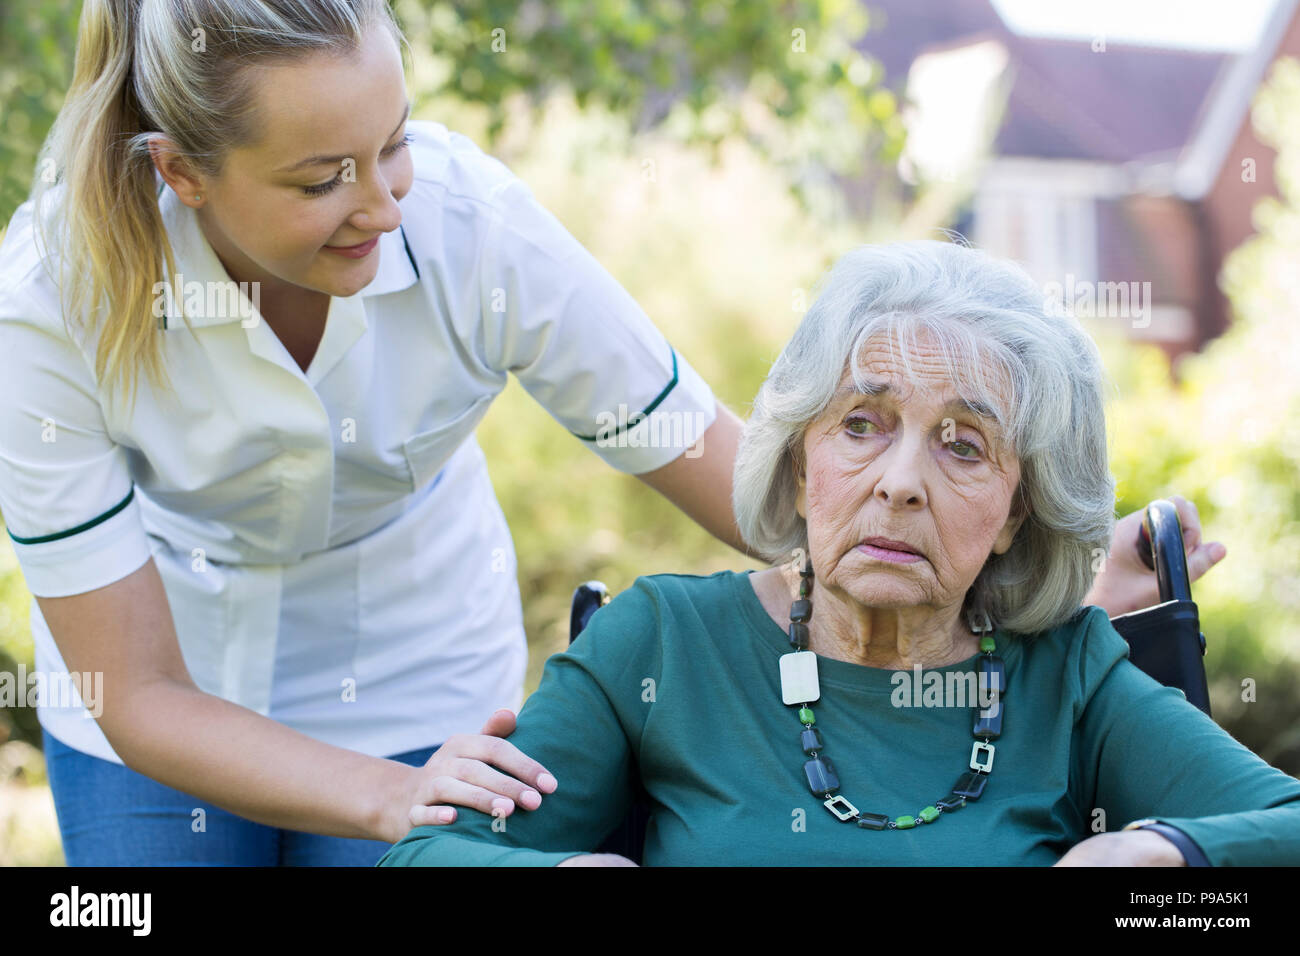 Care Worker Comforting Senior Woman Outdoors In Wheelchair - Stock Image